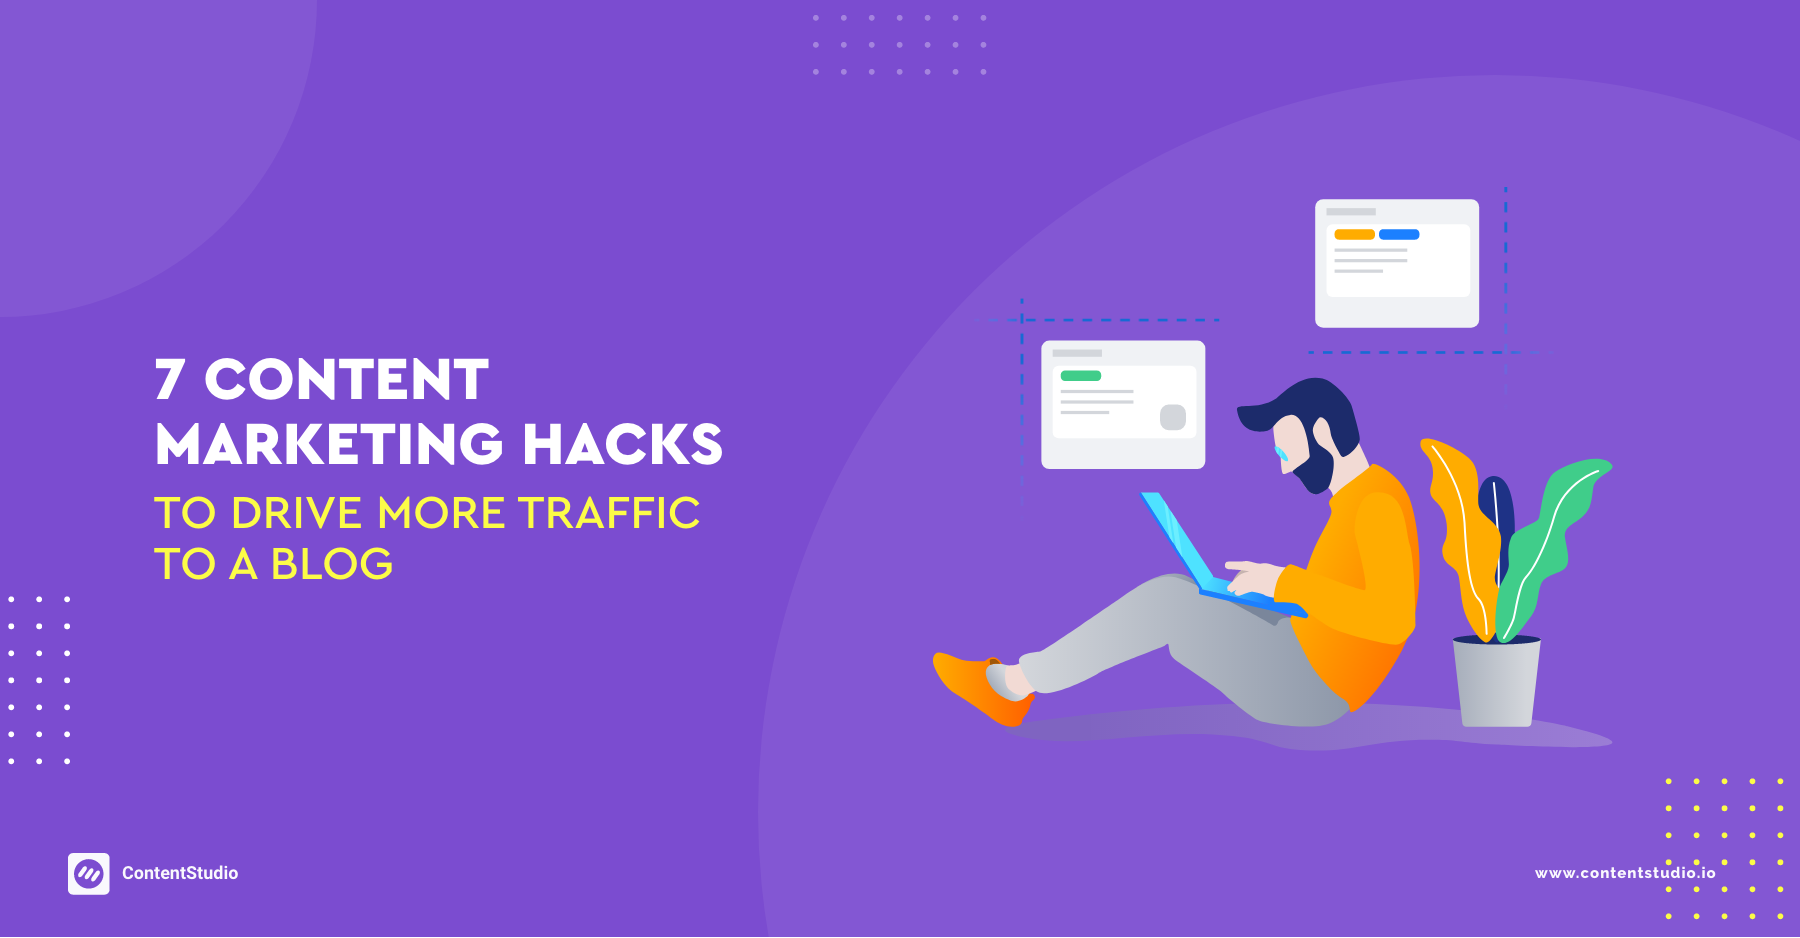 7 CONTENT MARKETING HACKS